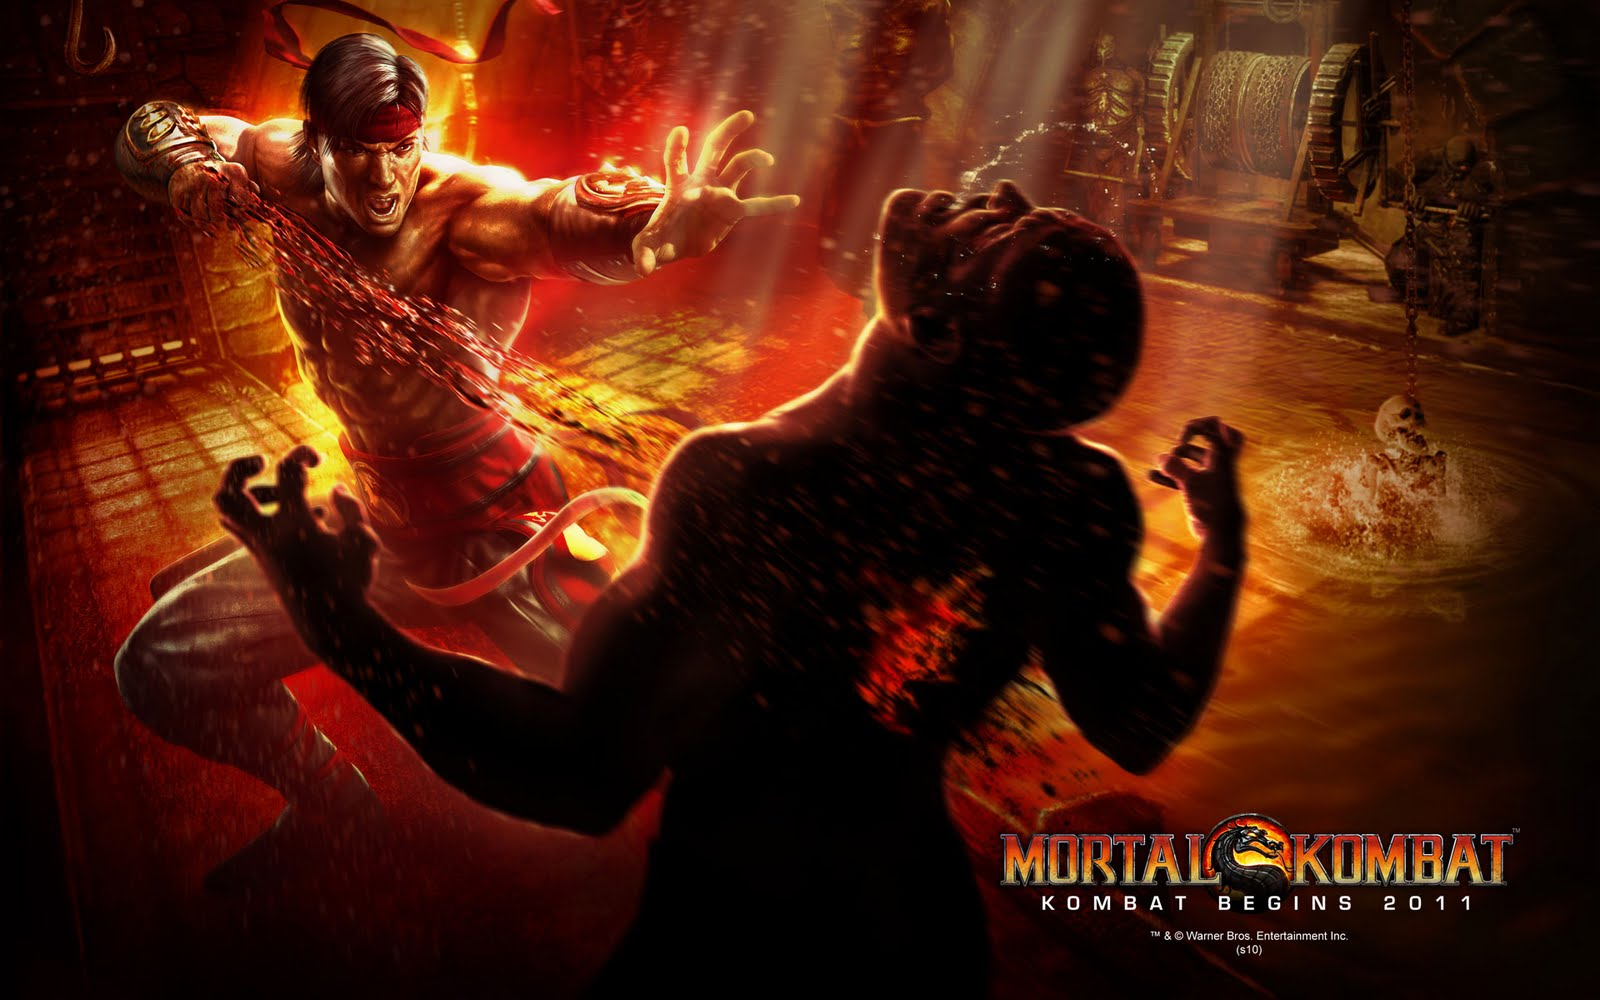 Mortal kombat HD & Widescreen Wallpaper 0.388437140339463